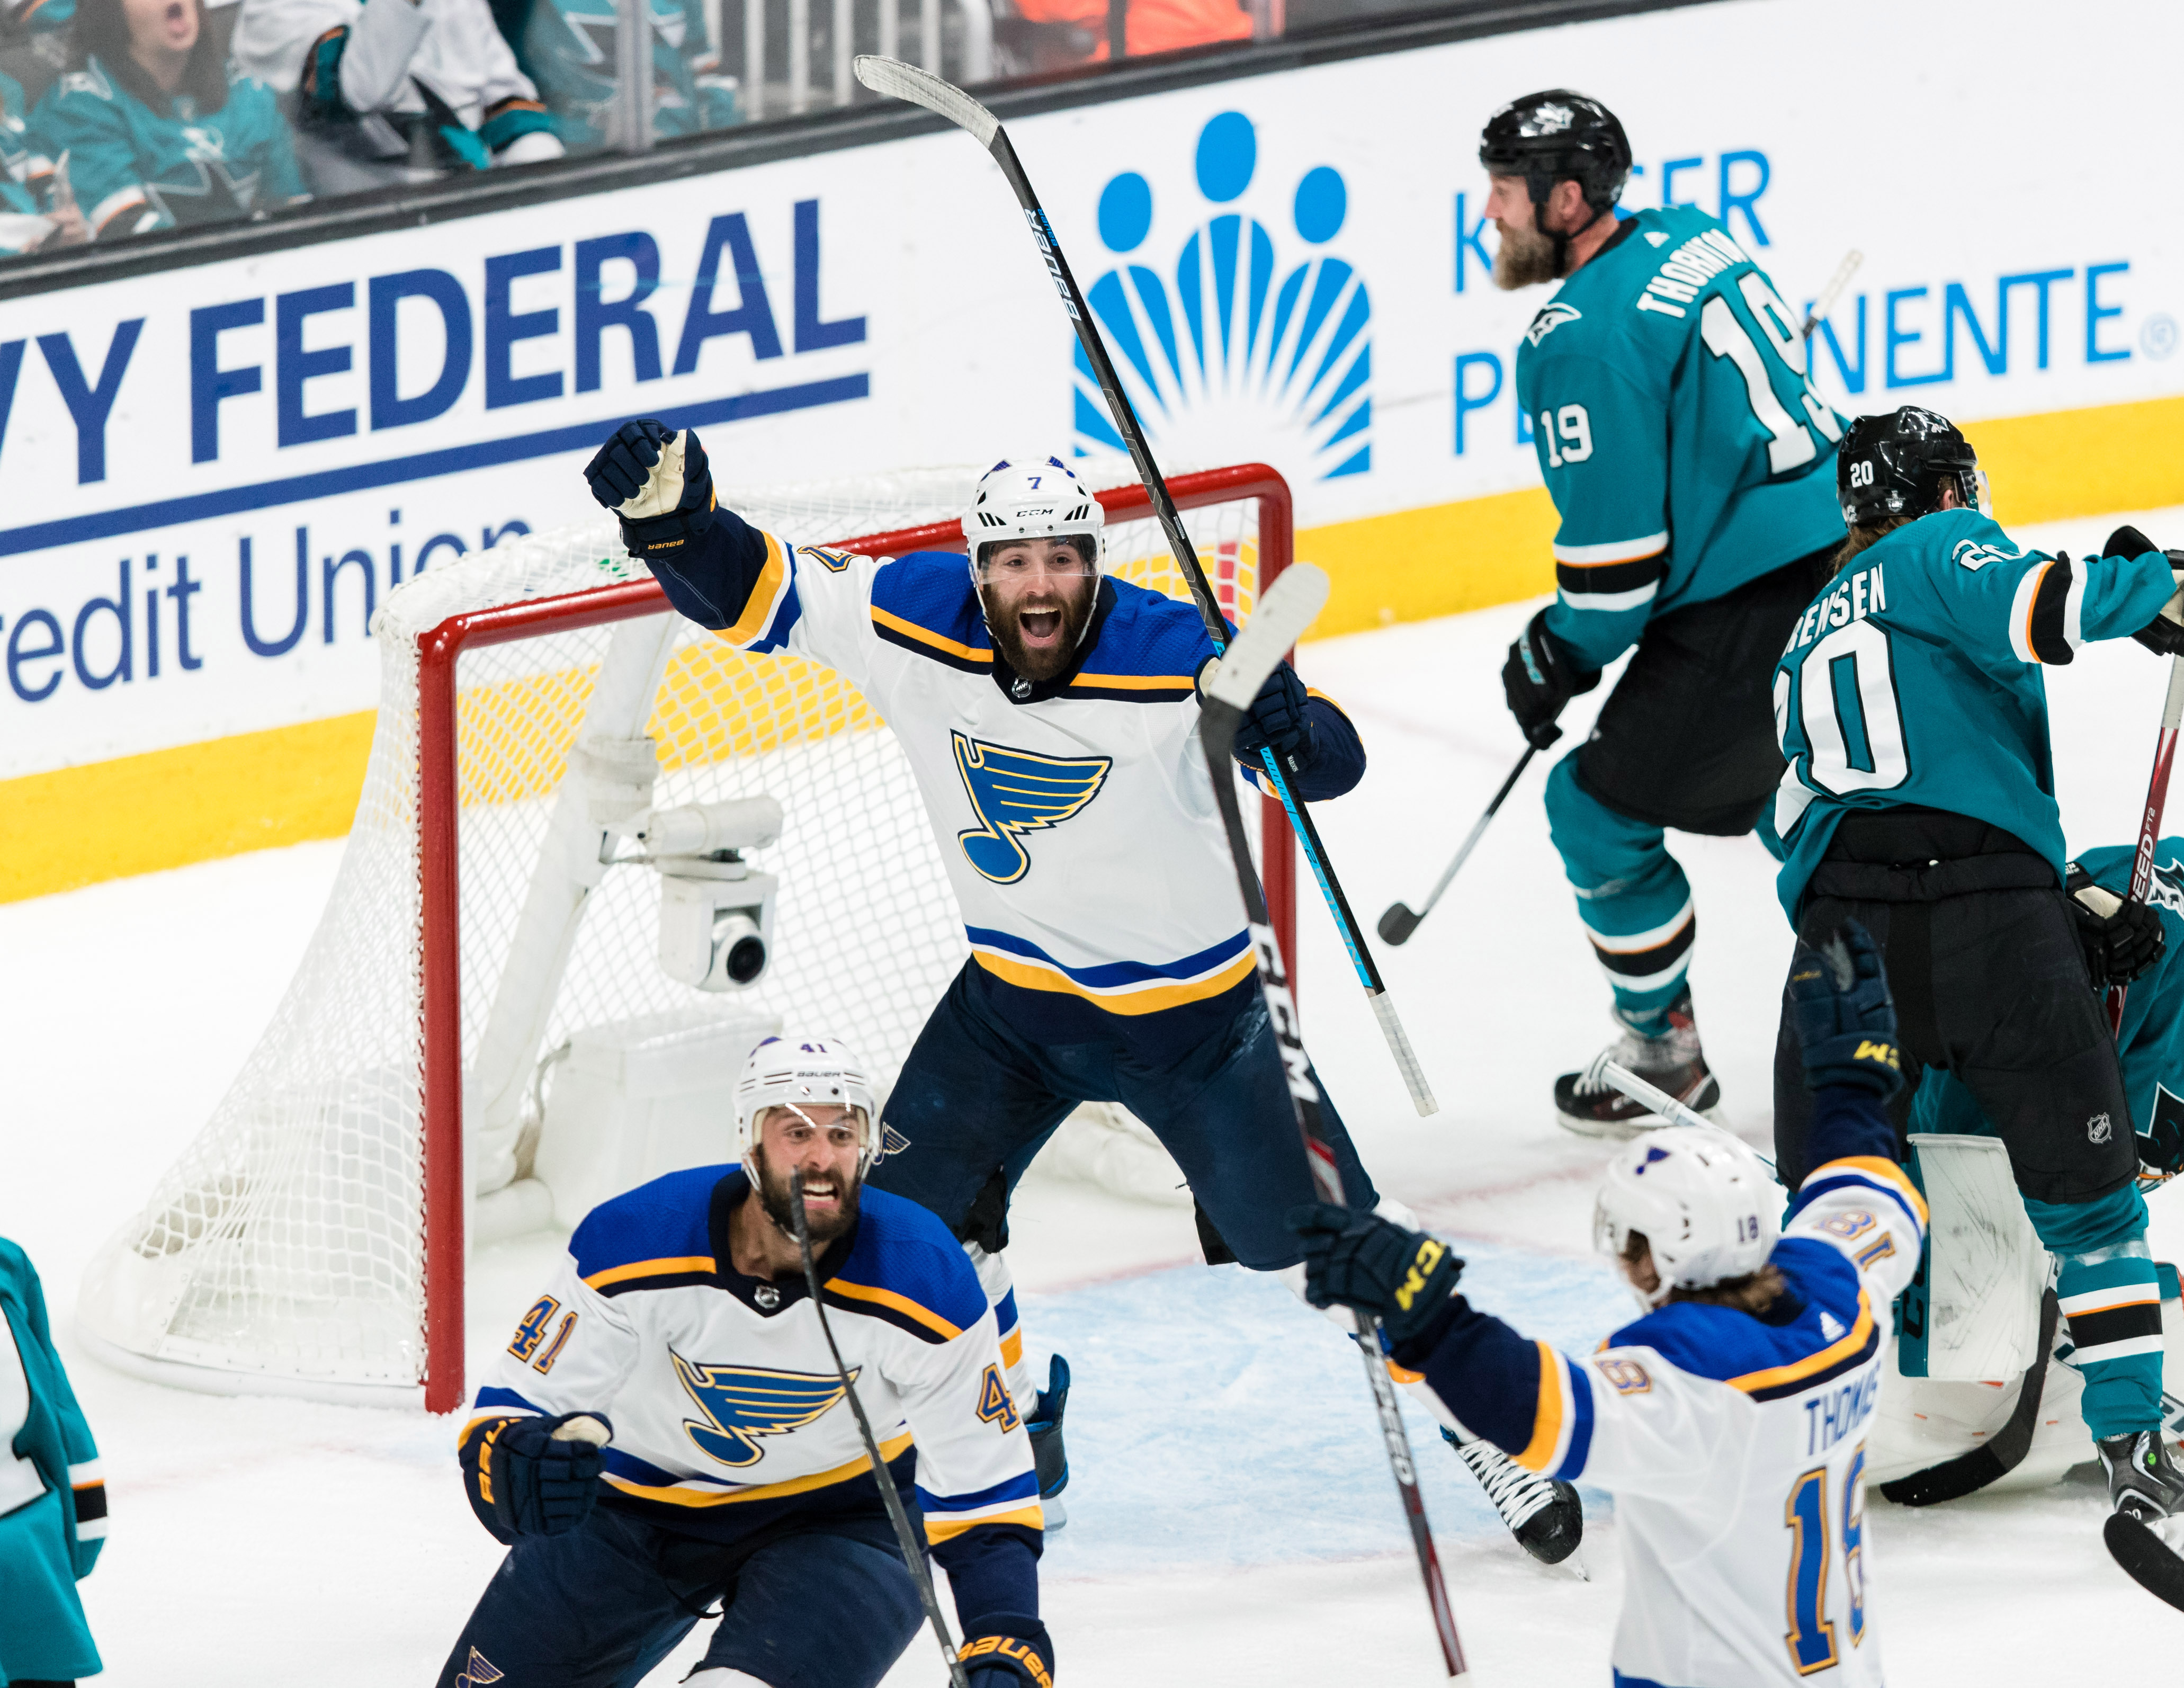 St. Louis Blues defenseman Robert Bortuzzo (41) celebrates with left wing Pat Maroon (7) after scoring a goal against the San Jose Sharks celebrates after \in the second period of game two of the Western Conference Final of the 2019 Stanley Cup Playoffs a